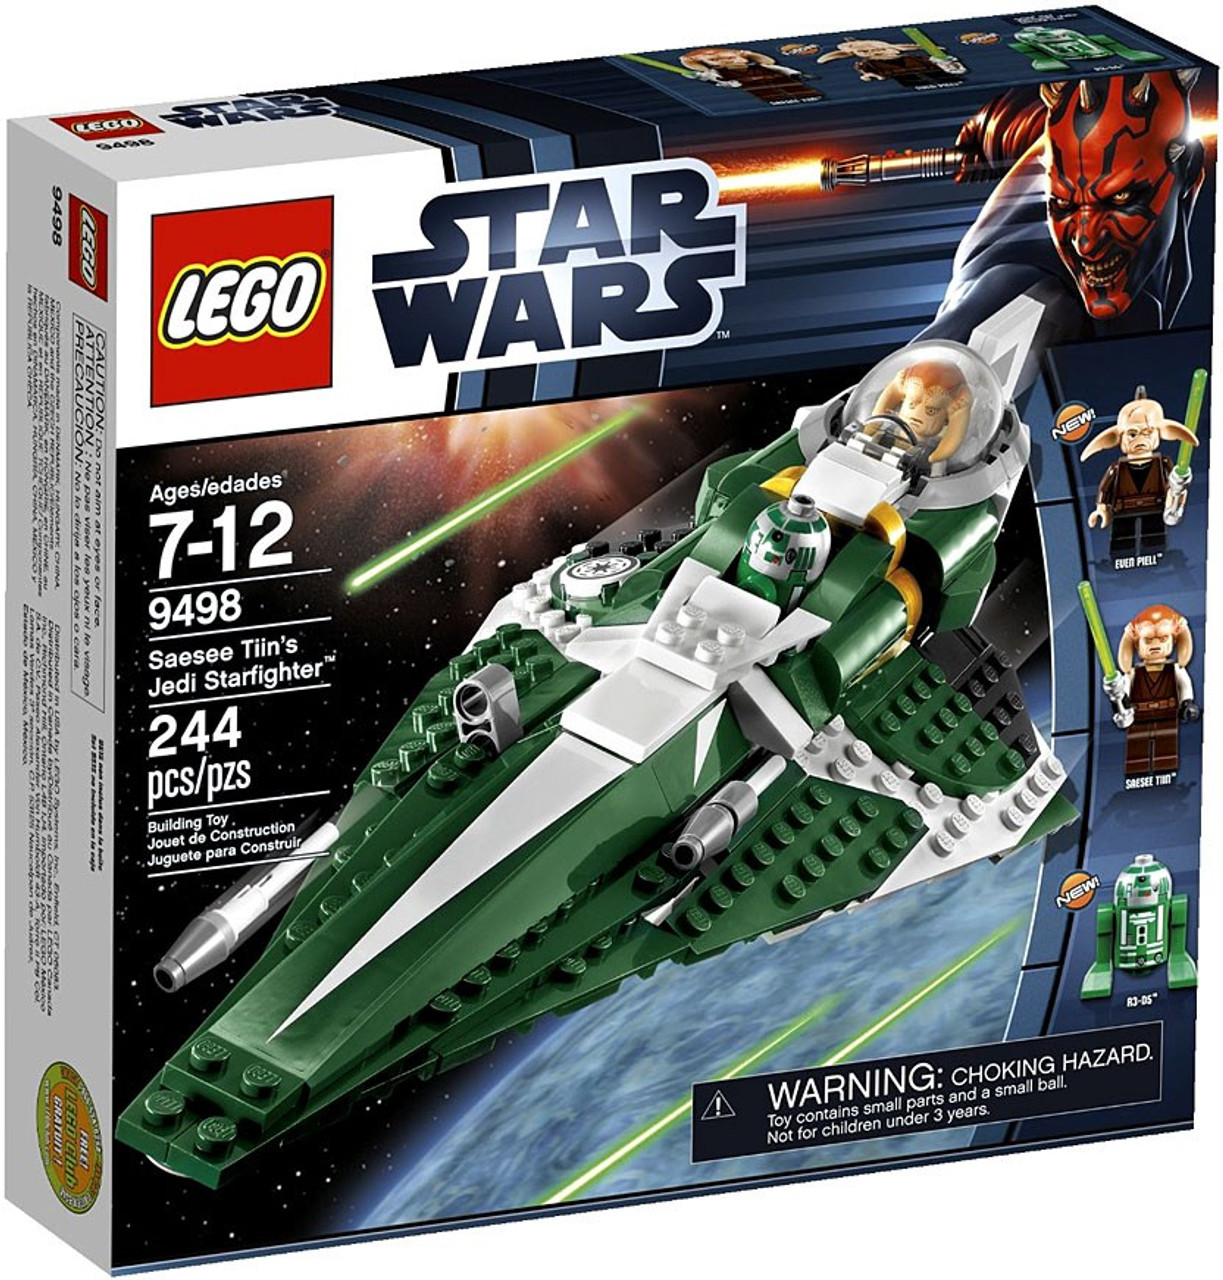 LEGO Star Wars The Clone Wars Saesee Tiins Jedi Starfighter Set 9498 ...